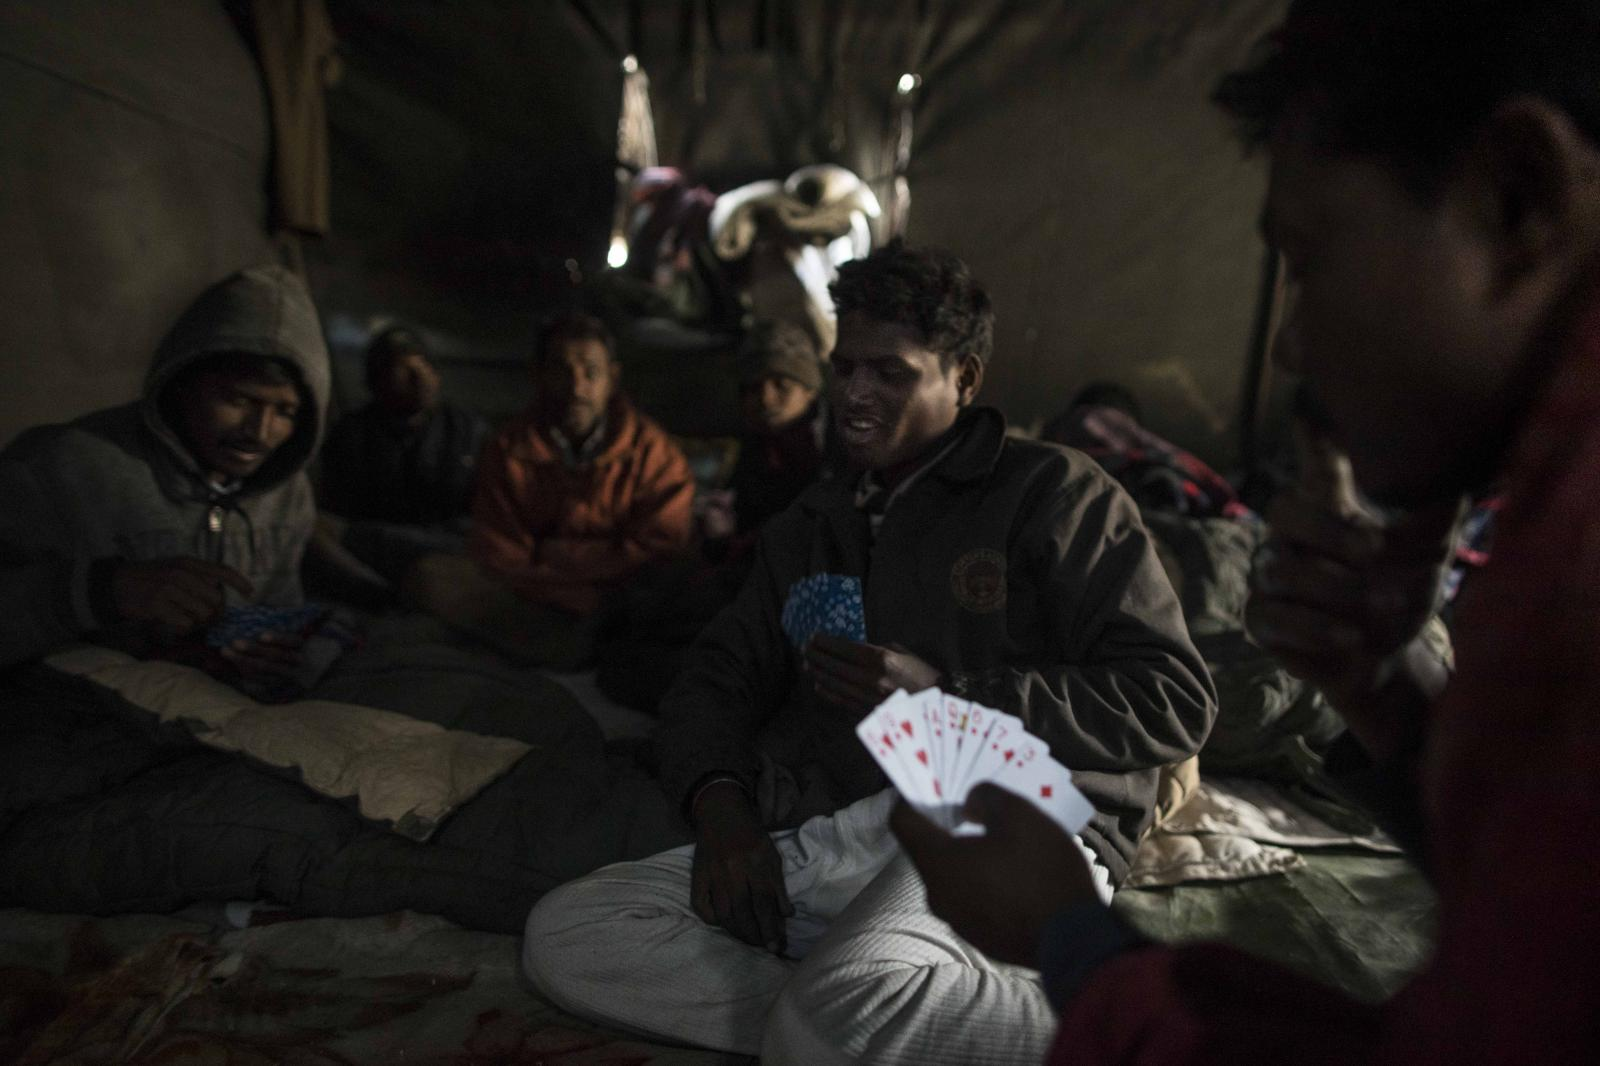 Road maintenance workers from India's low-lying eastern Jharkhand state play cards inside their tent following a day's work at their campsite near Tangtse village in northern India's Ladakh region.